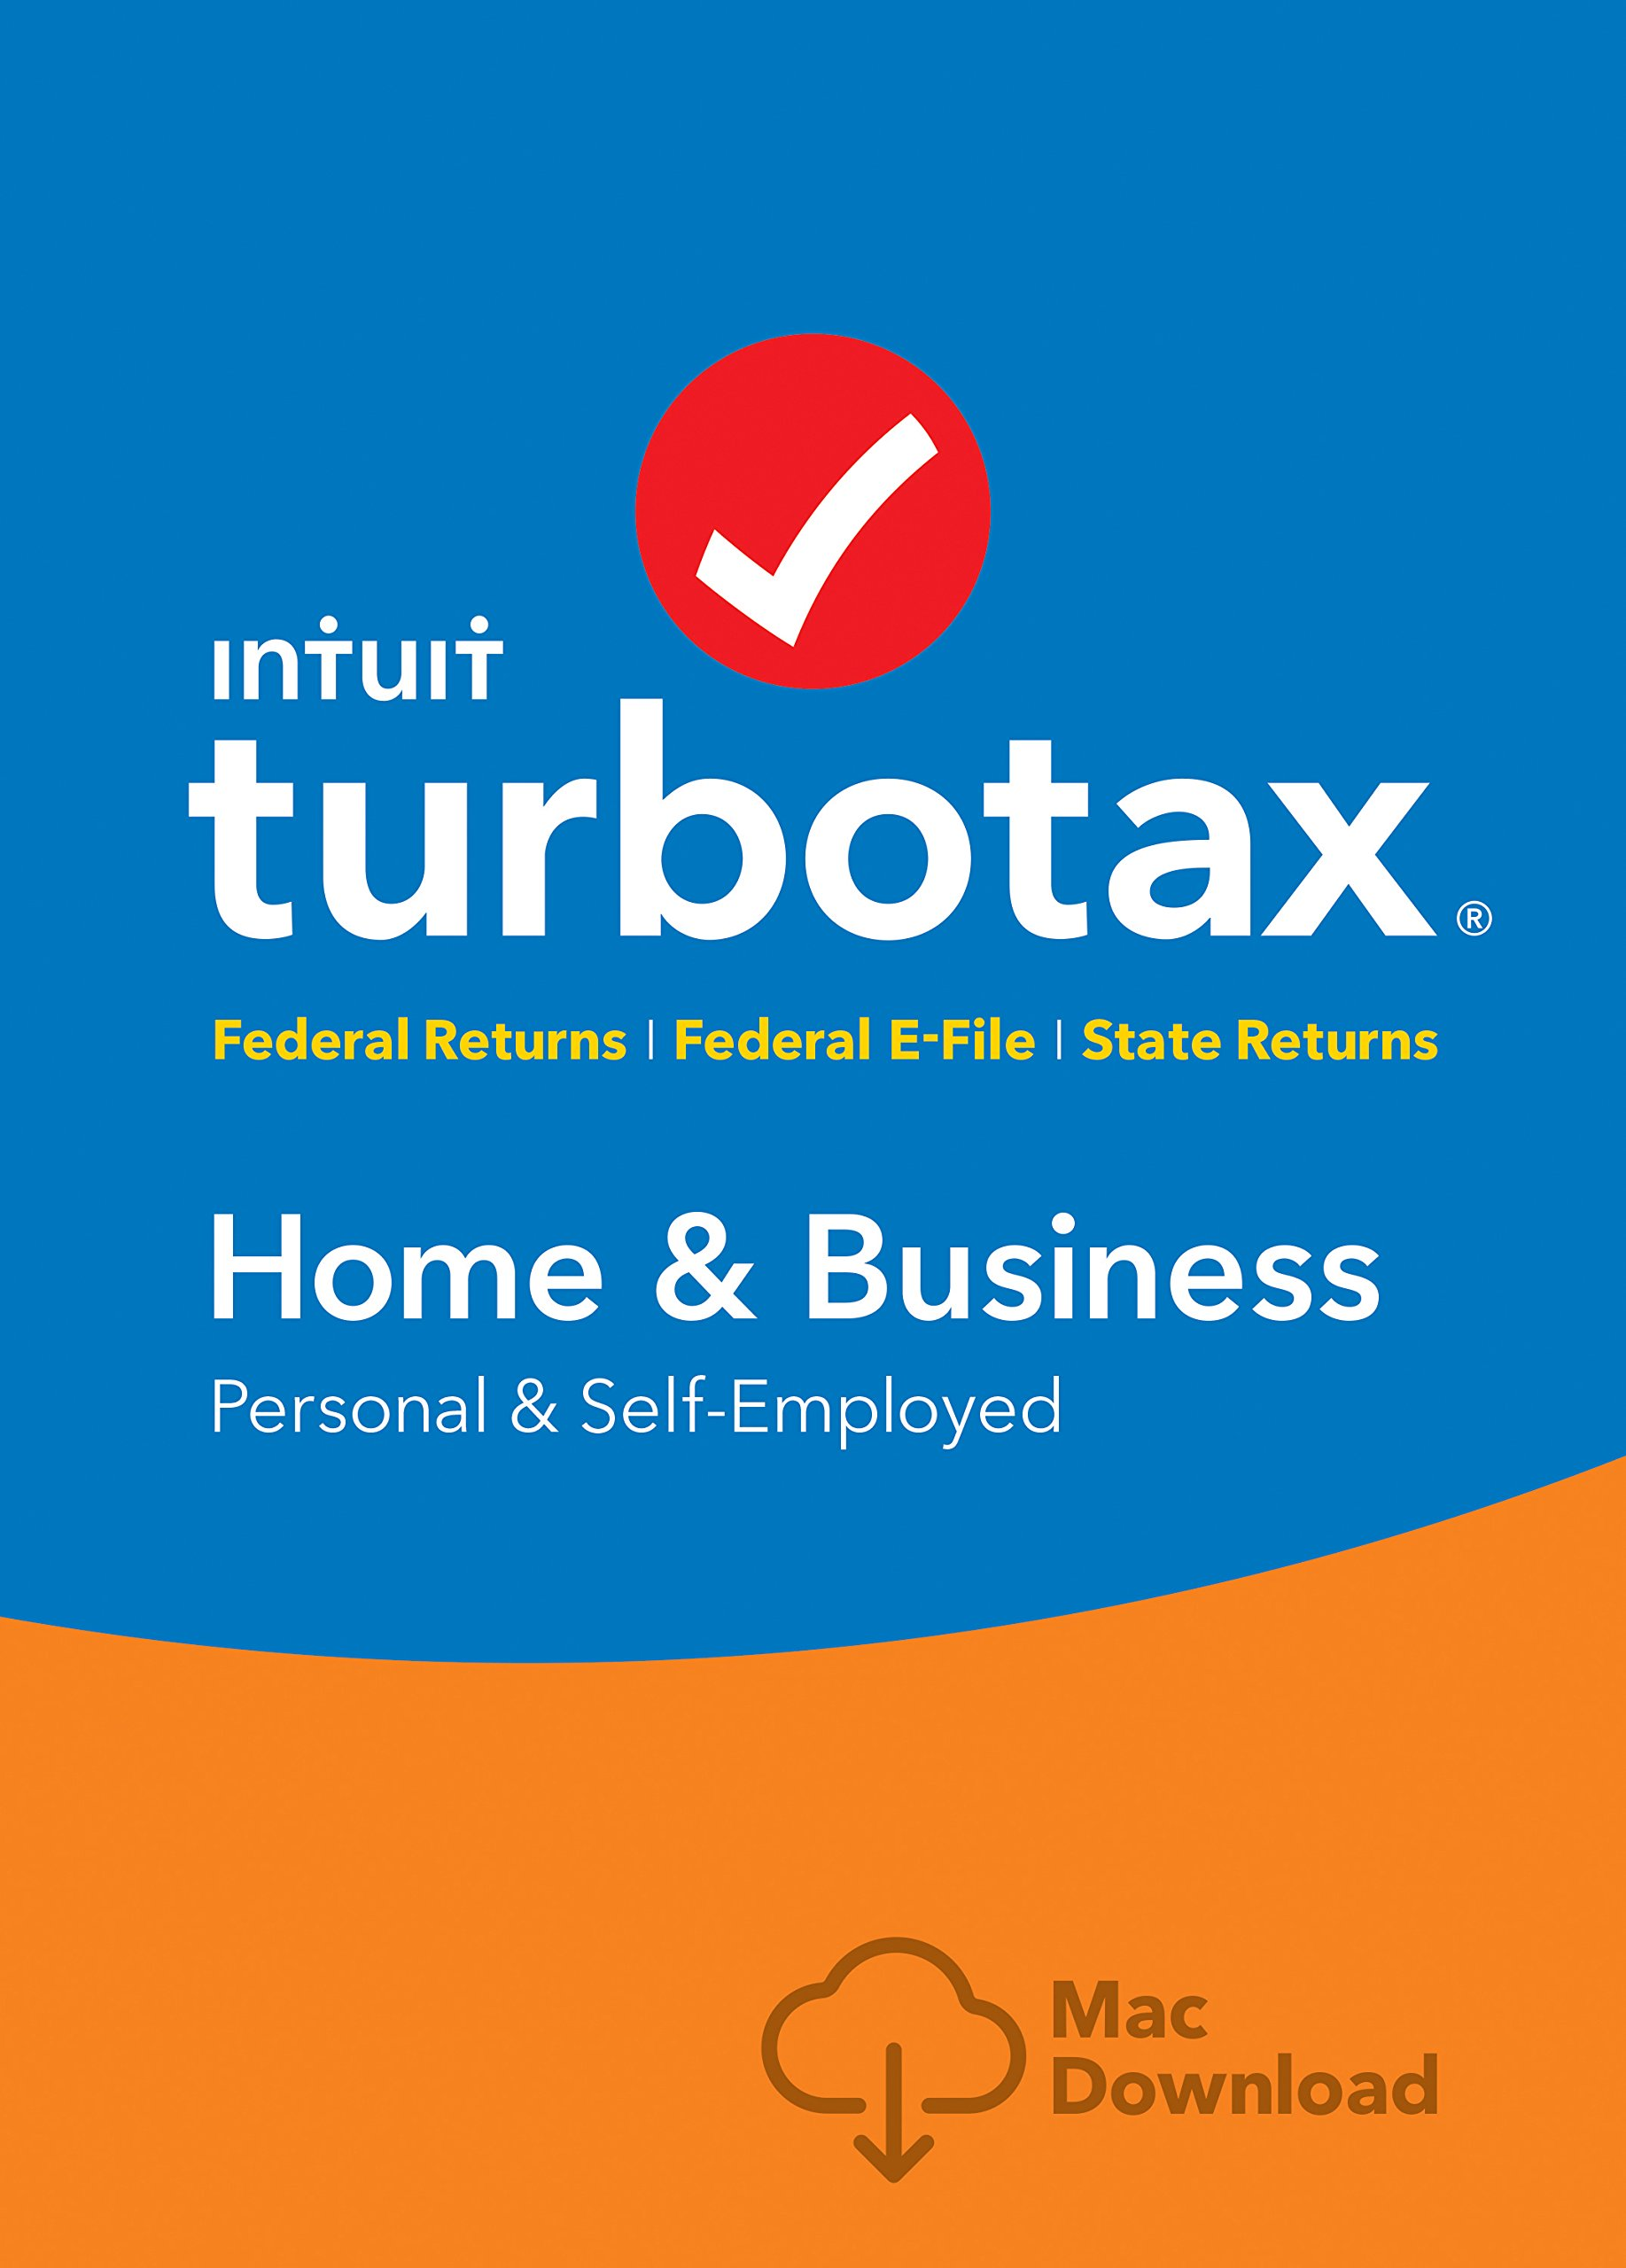 TurboTax Home & Business + State 2018 Tax Software [MAC Download] [Amazon Exclusive] by Intuit, Inc.